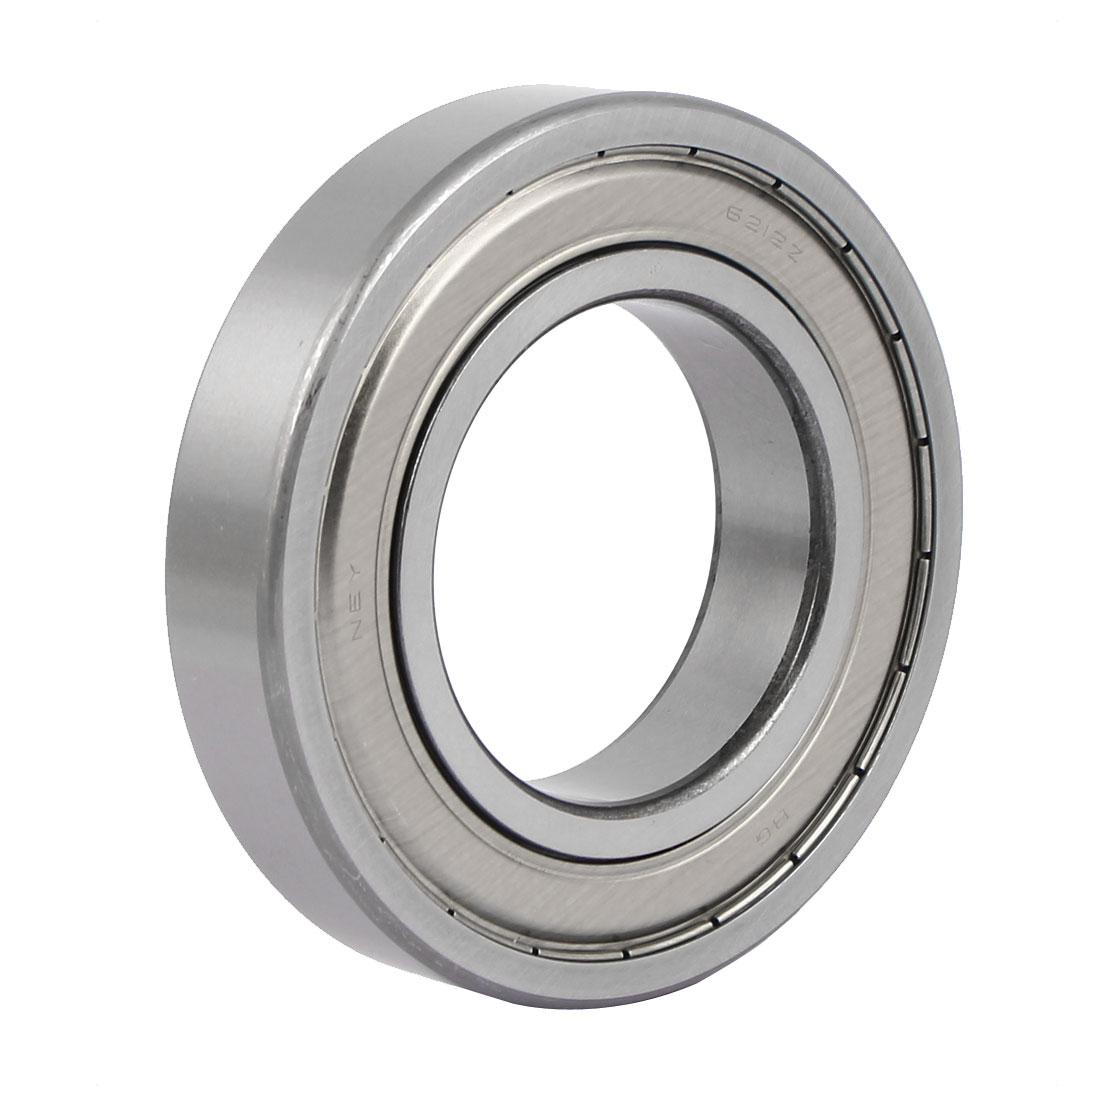 ZZ6212 110mm x 59.5mm Single Row Double Shielded Deep Groove Ball Bearing